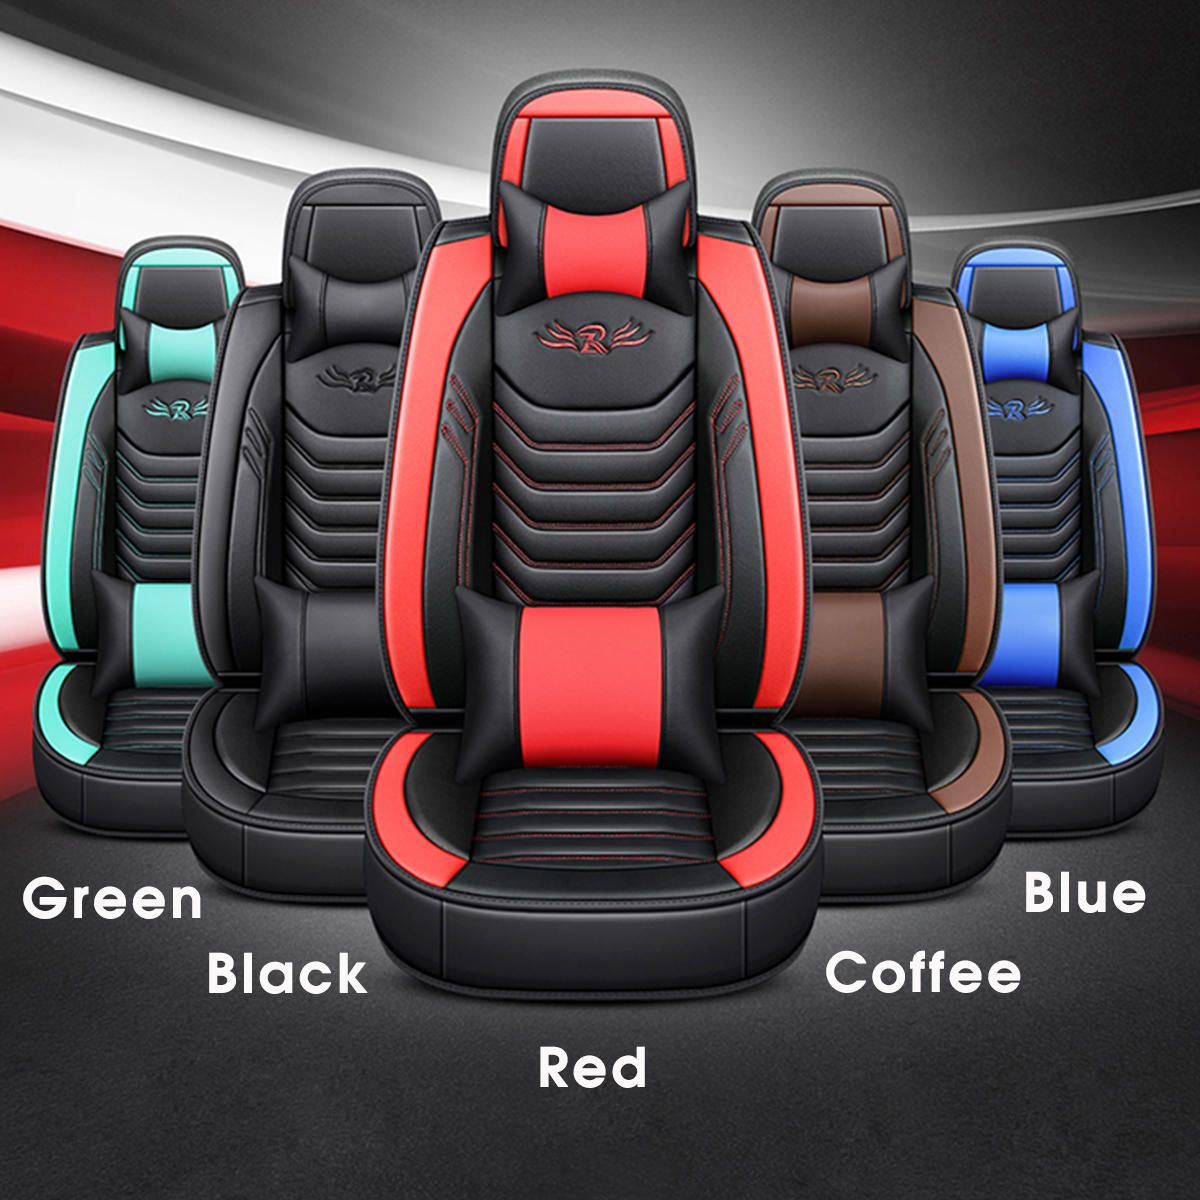 ICW US$141.38 Wear-Resistant PU Leather Car Seat Cover 65 * 55 * 25cm